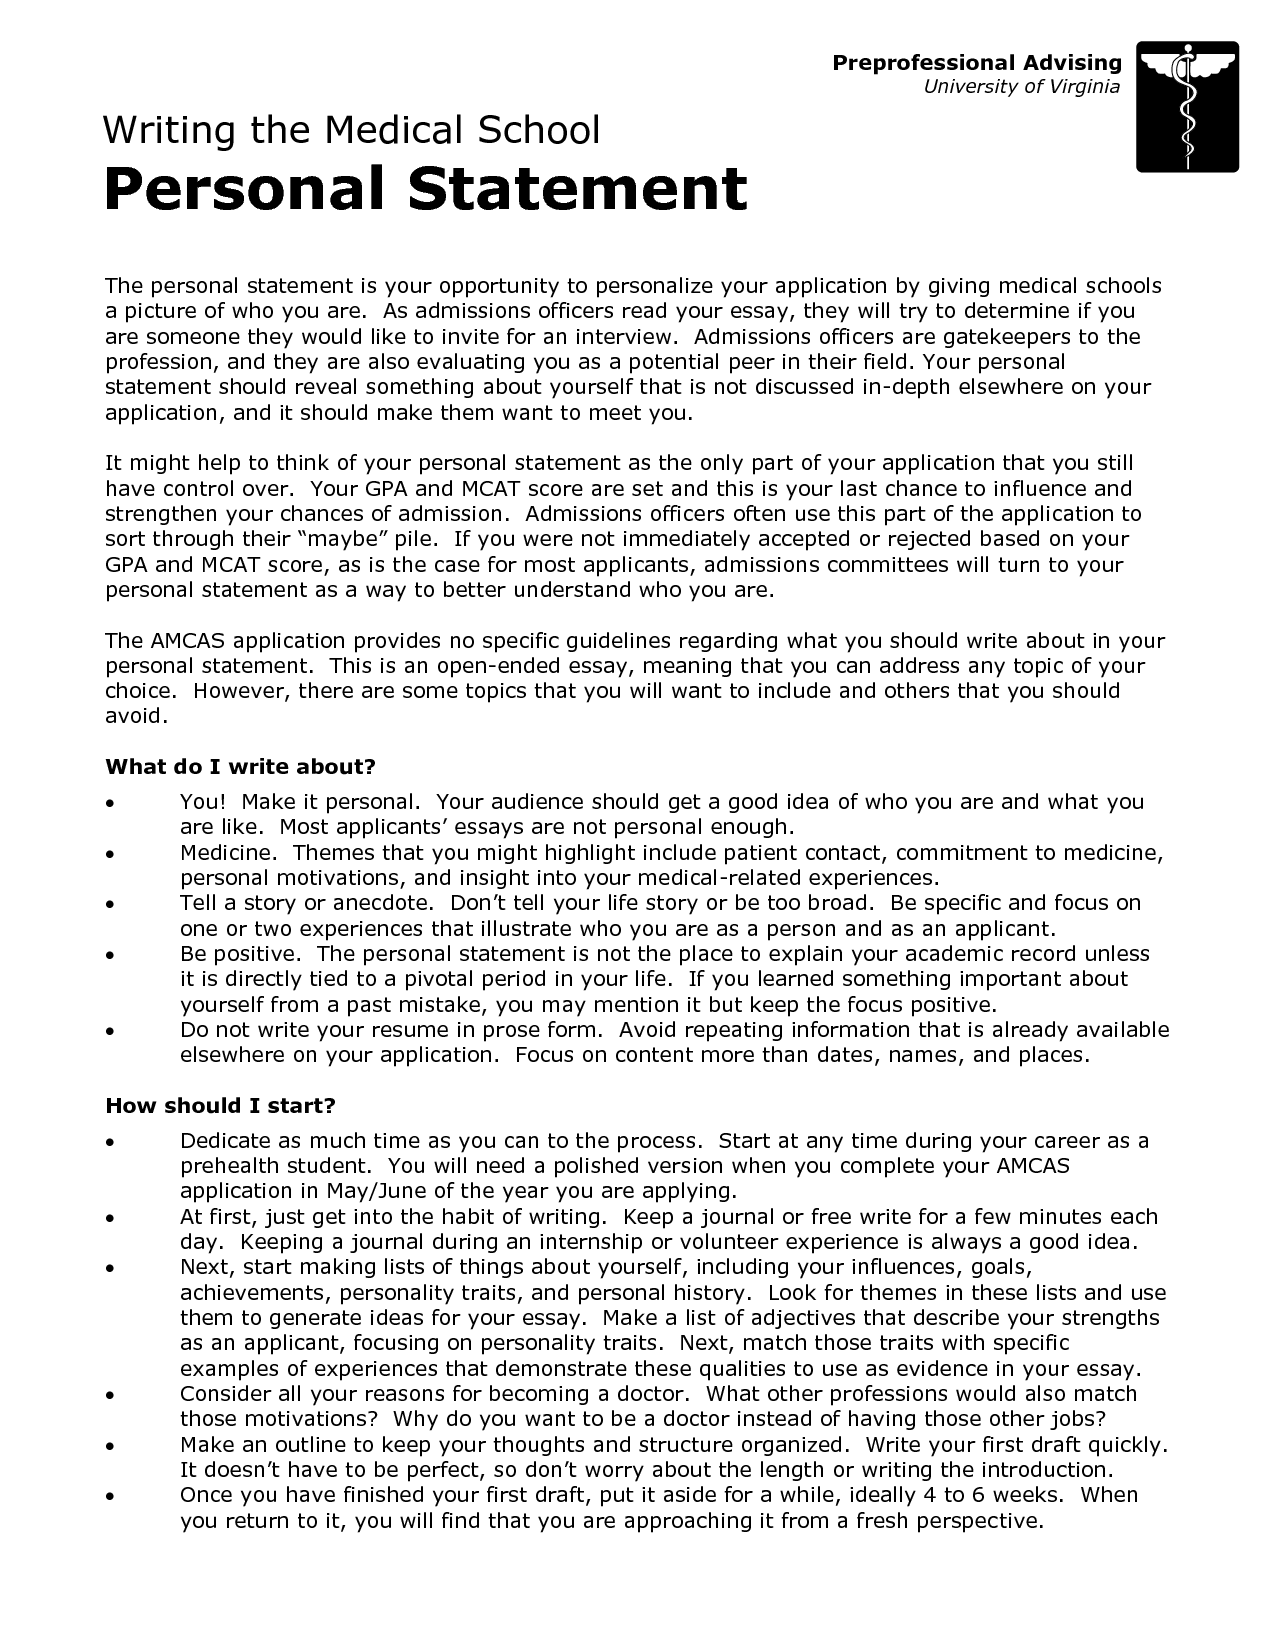 Help with writing a personal statement to graduate school special education